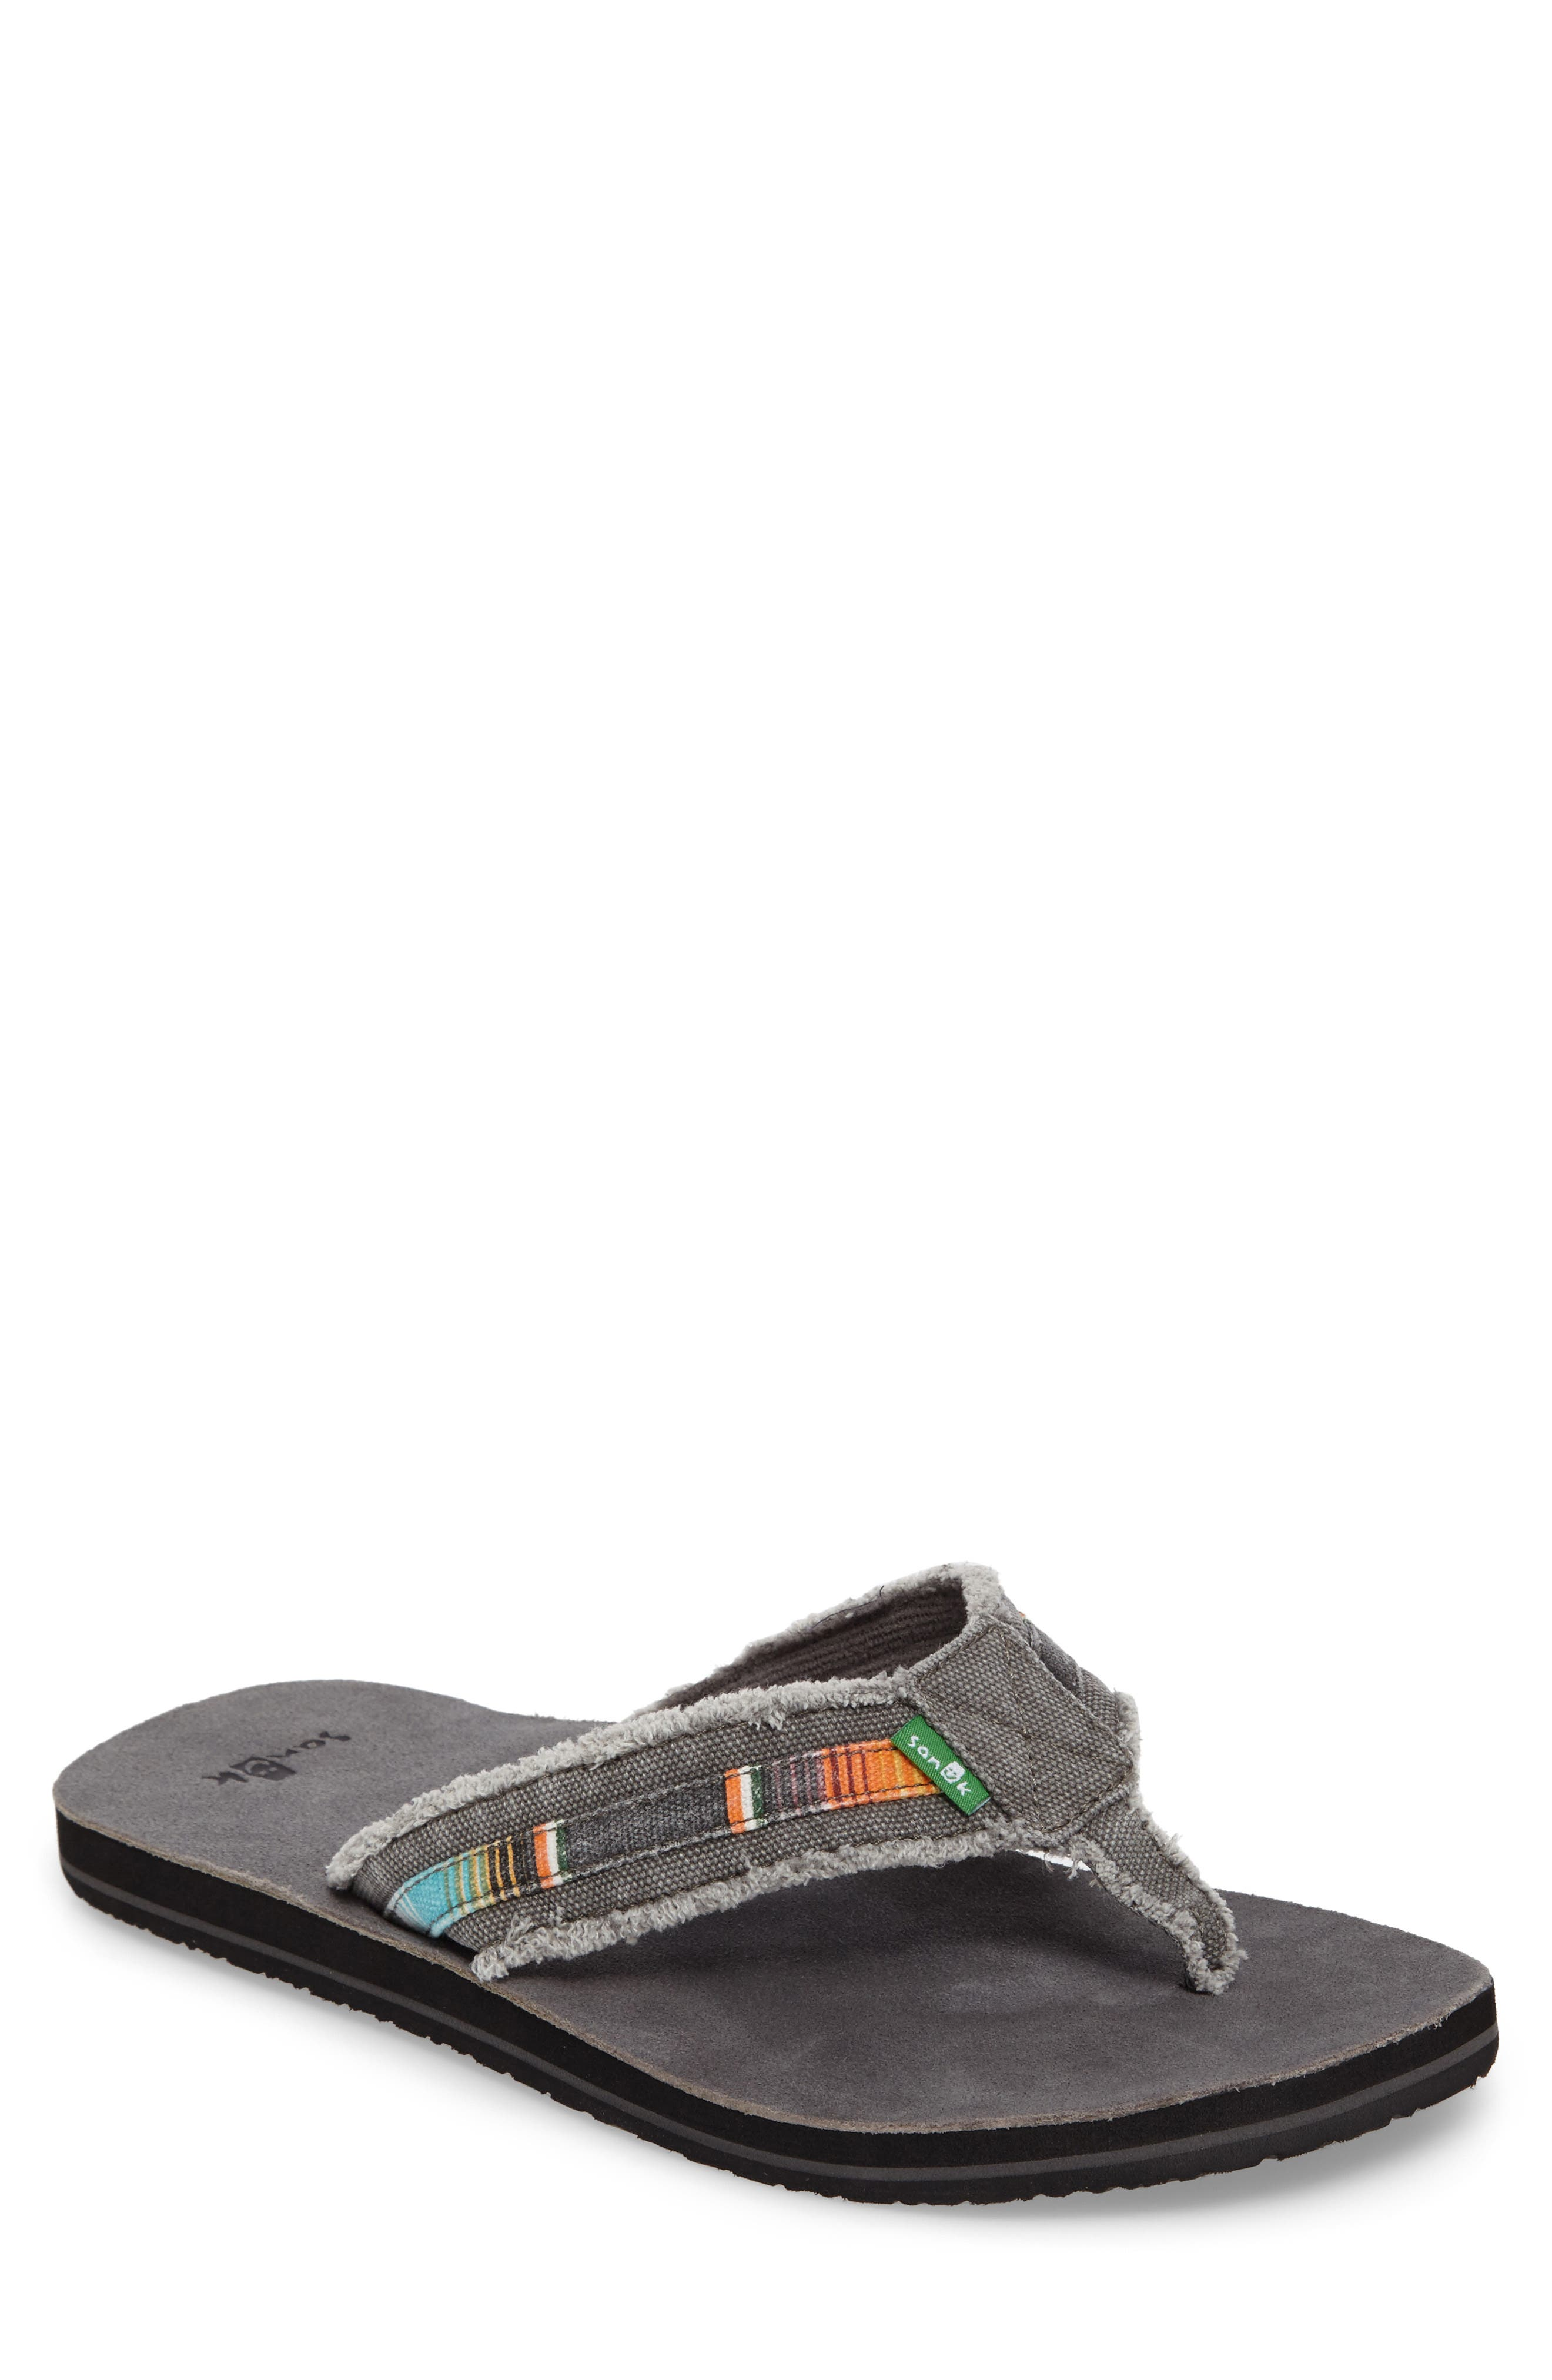 Main Image - Sanuk Fraid So Flip Flop (Men)